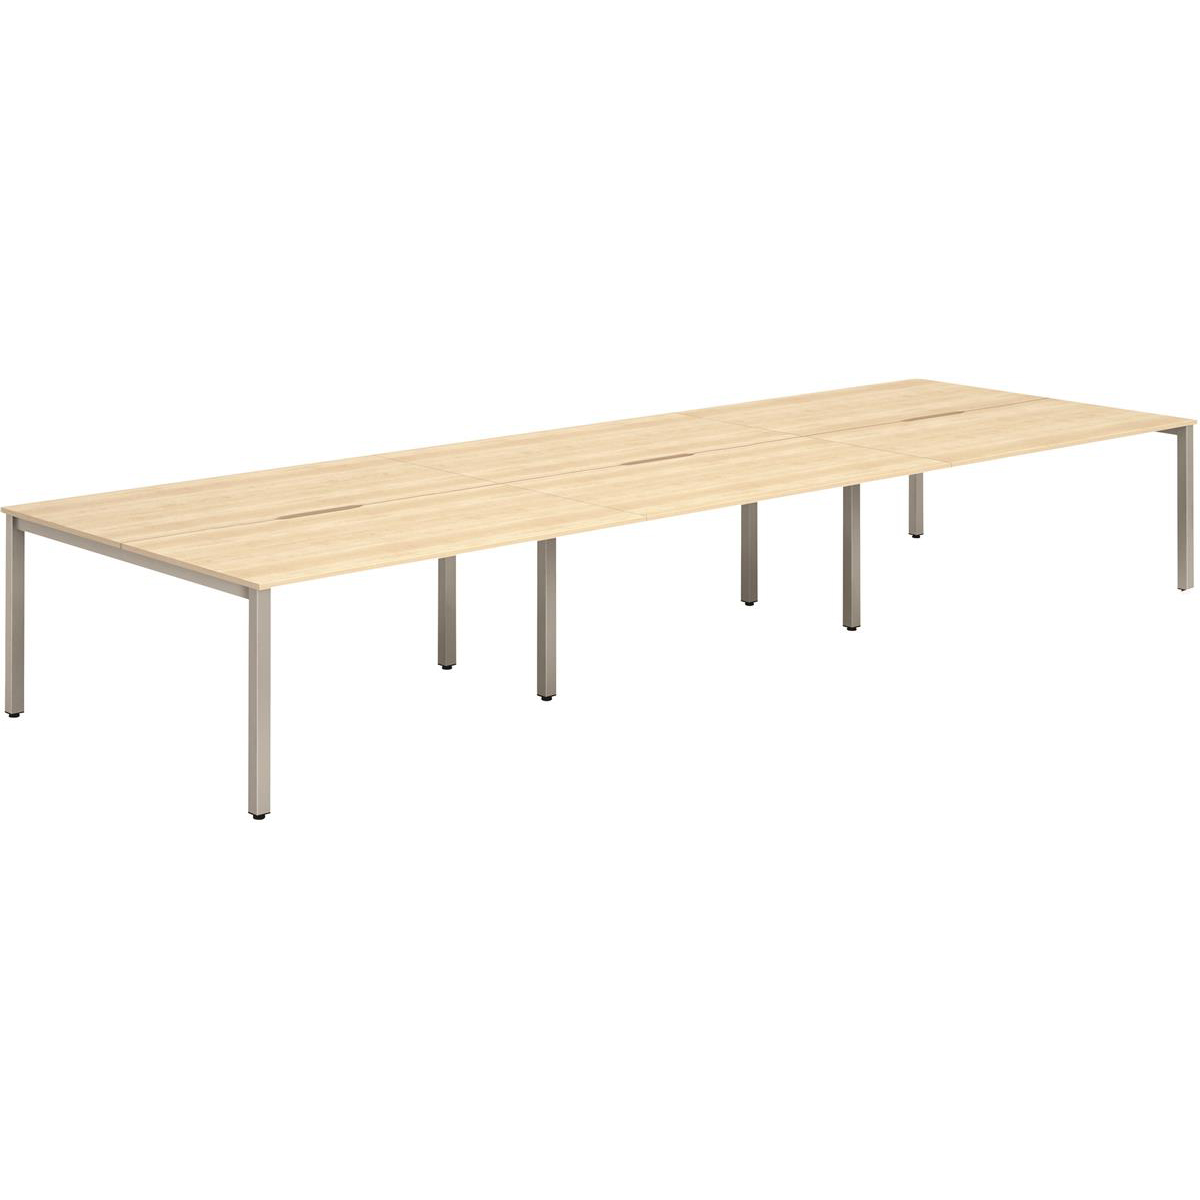 Trexus Bench Desk 6 Person Back to Back Configuration Silver Leg 3600x1600mm Maple Ref BE296